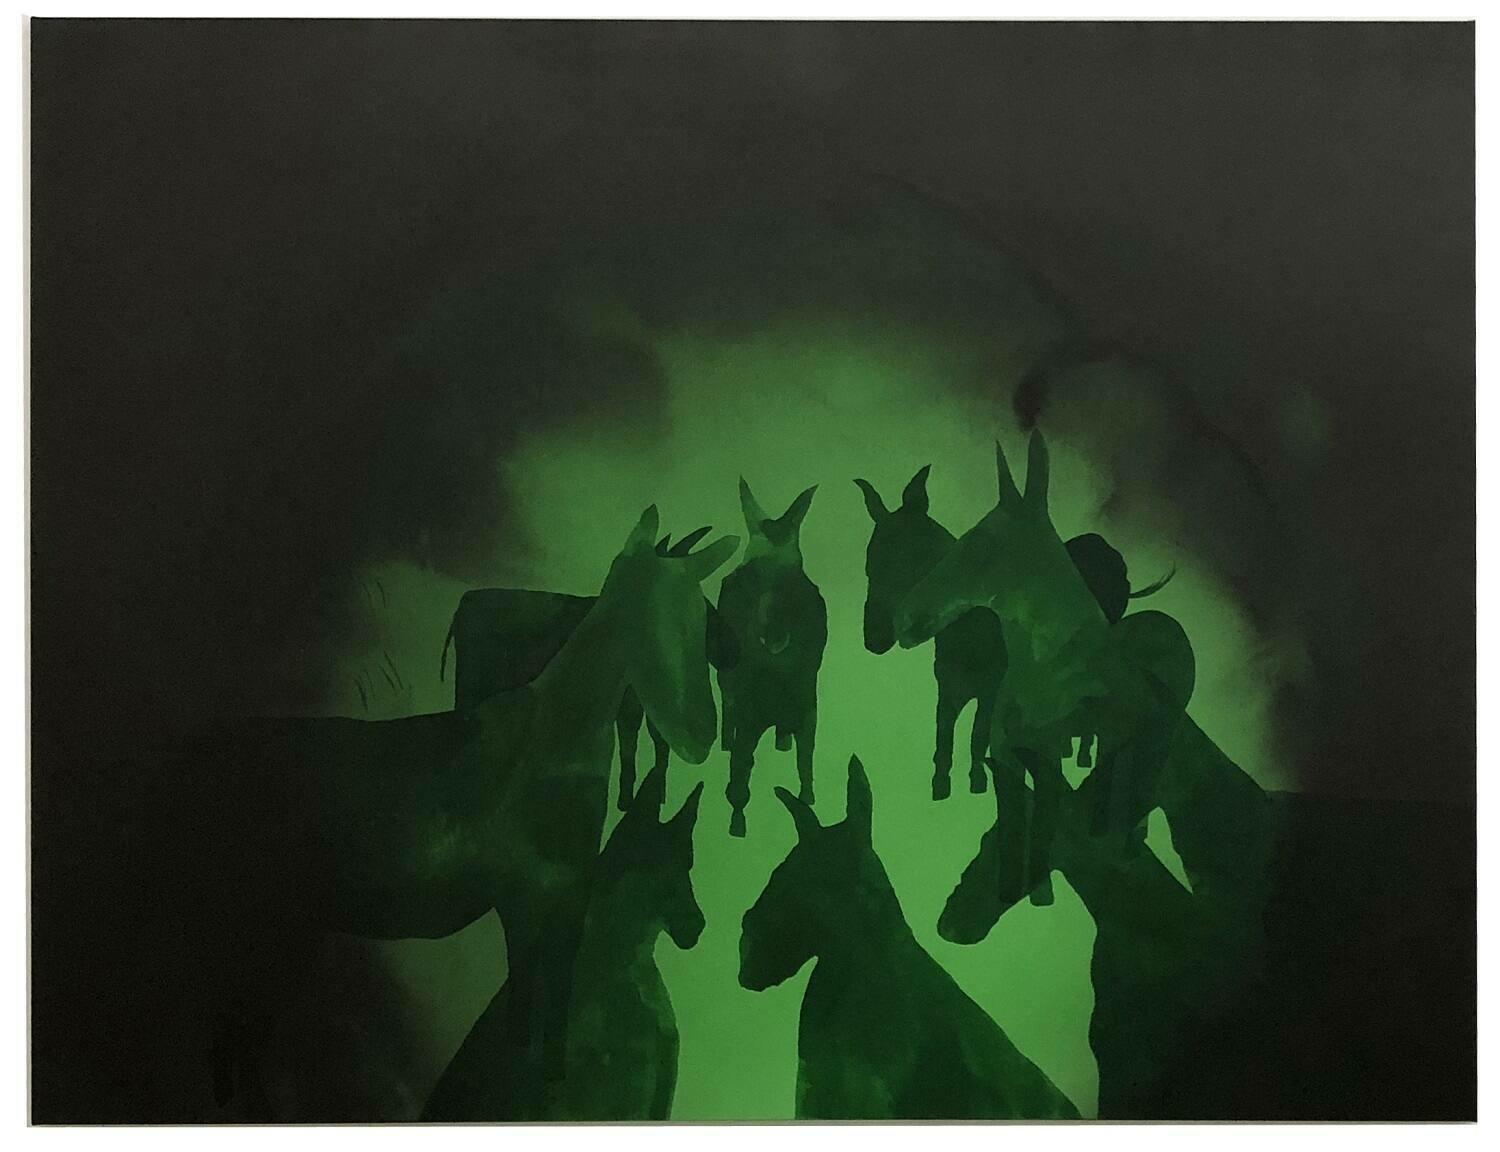 A green monochrome depiction of donkeys' silhouettes congegrated in a circle and framed by a black vingette.